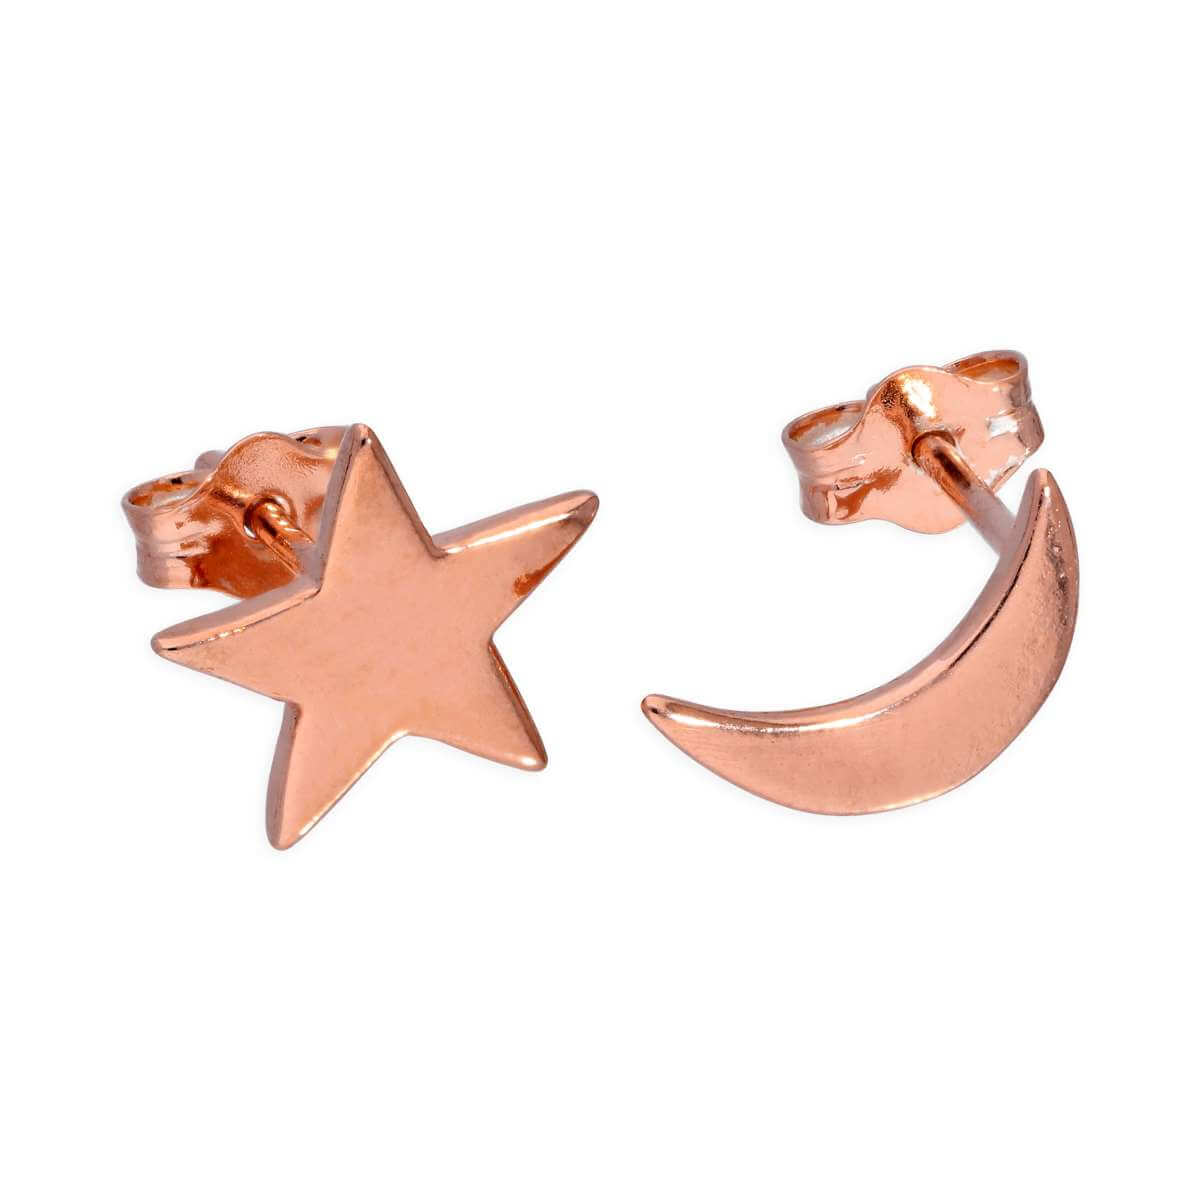 Rose Gold Plated Sterling Silver Moon & Star Stud Earrings